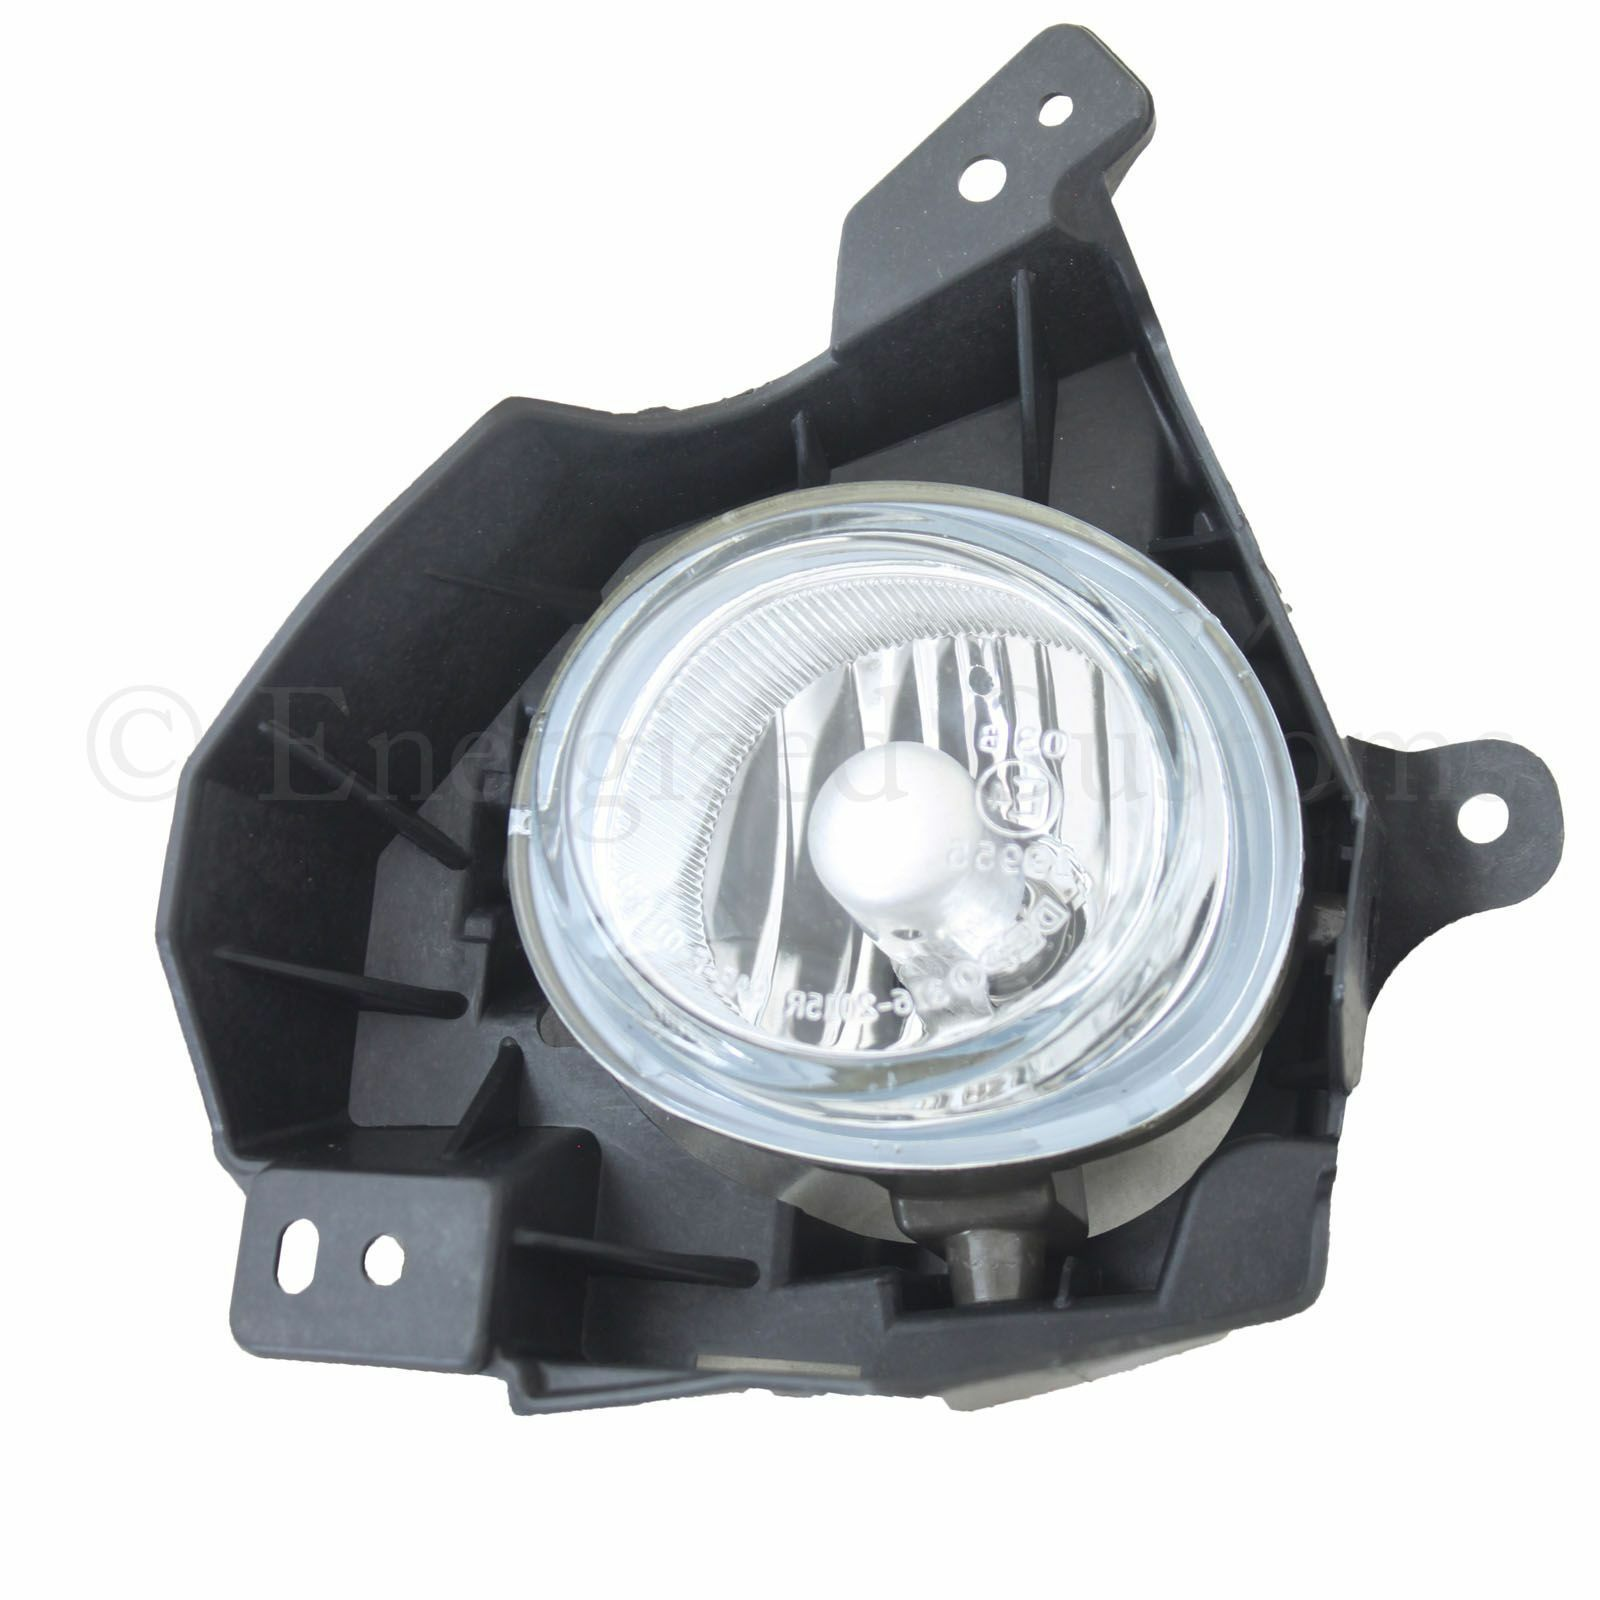 Vauxhall Adam Rear Right Side Fog Lamp Light 13480592 New Original